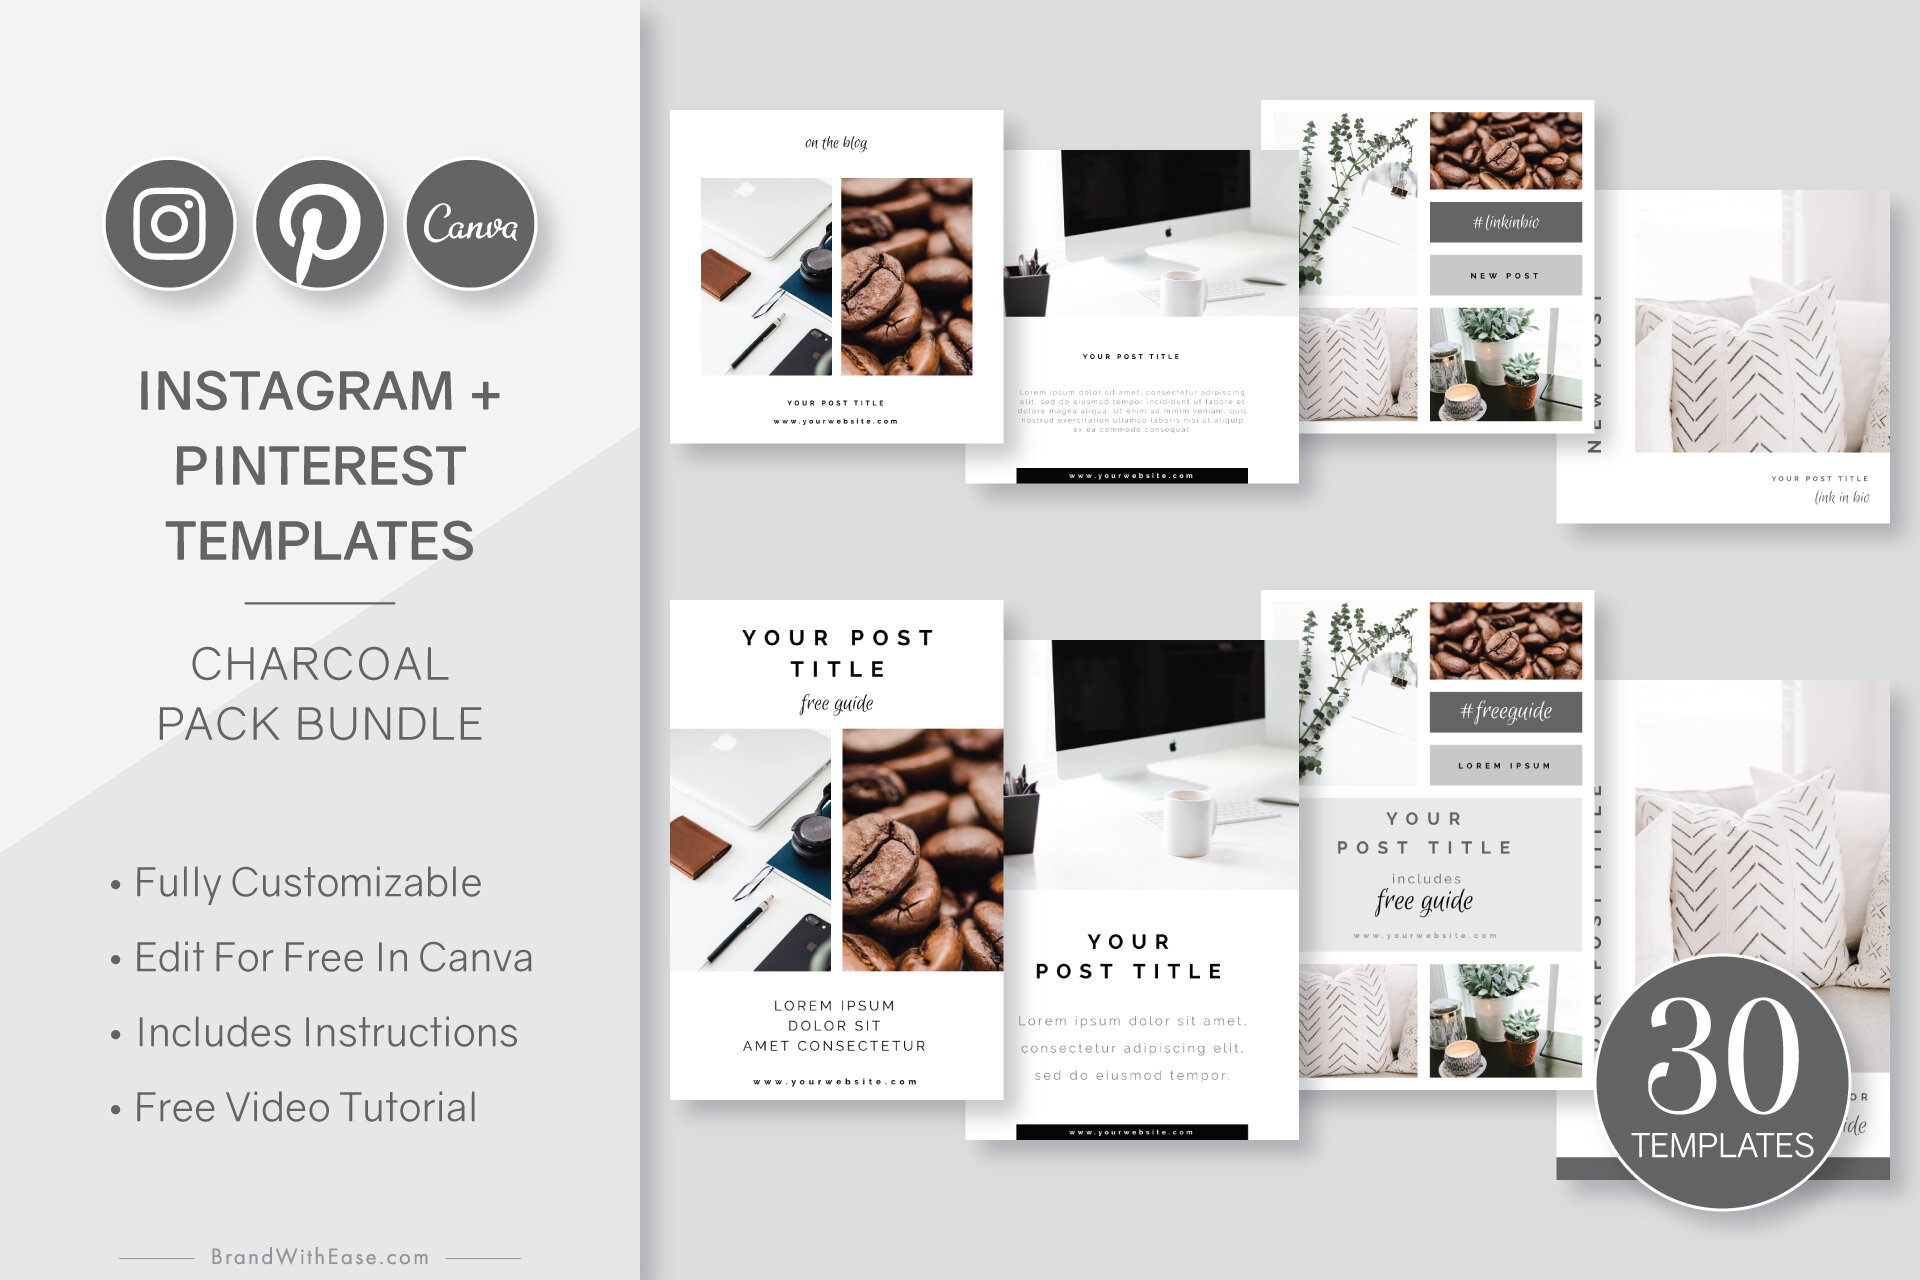 Charcoal Pack Bundle - 30-pc Canva Template Collection for Instagram + Pinterest ($22 value)Learn More →